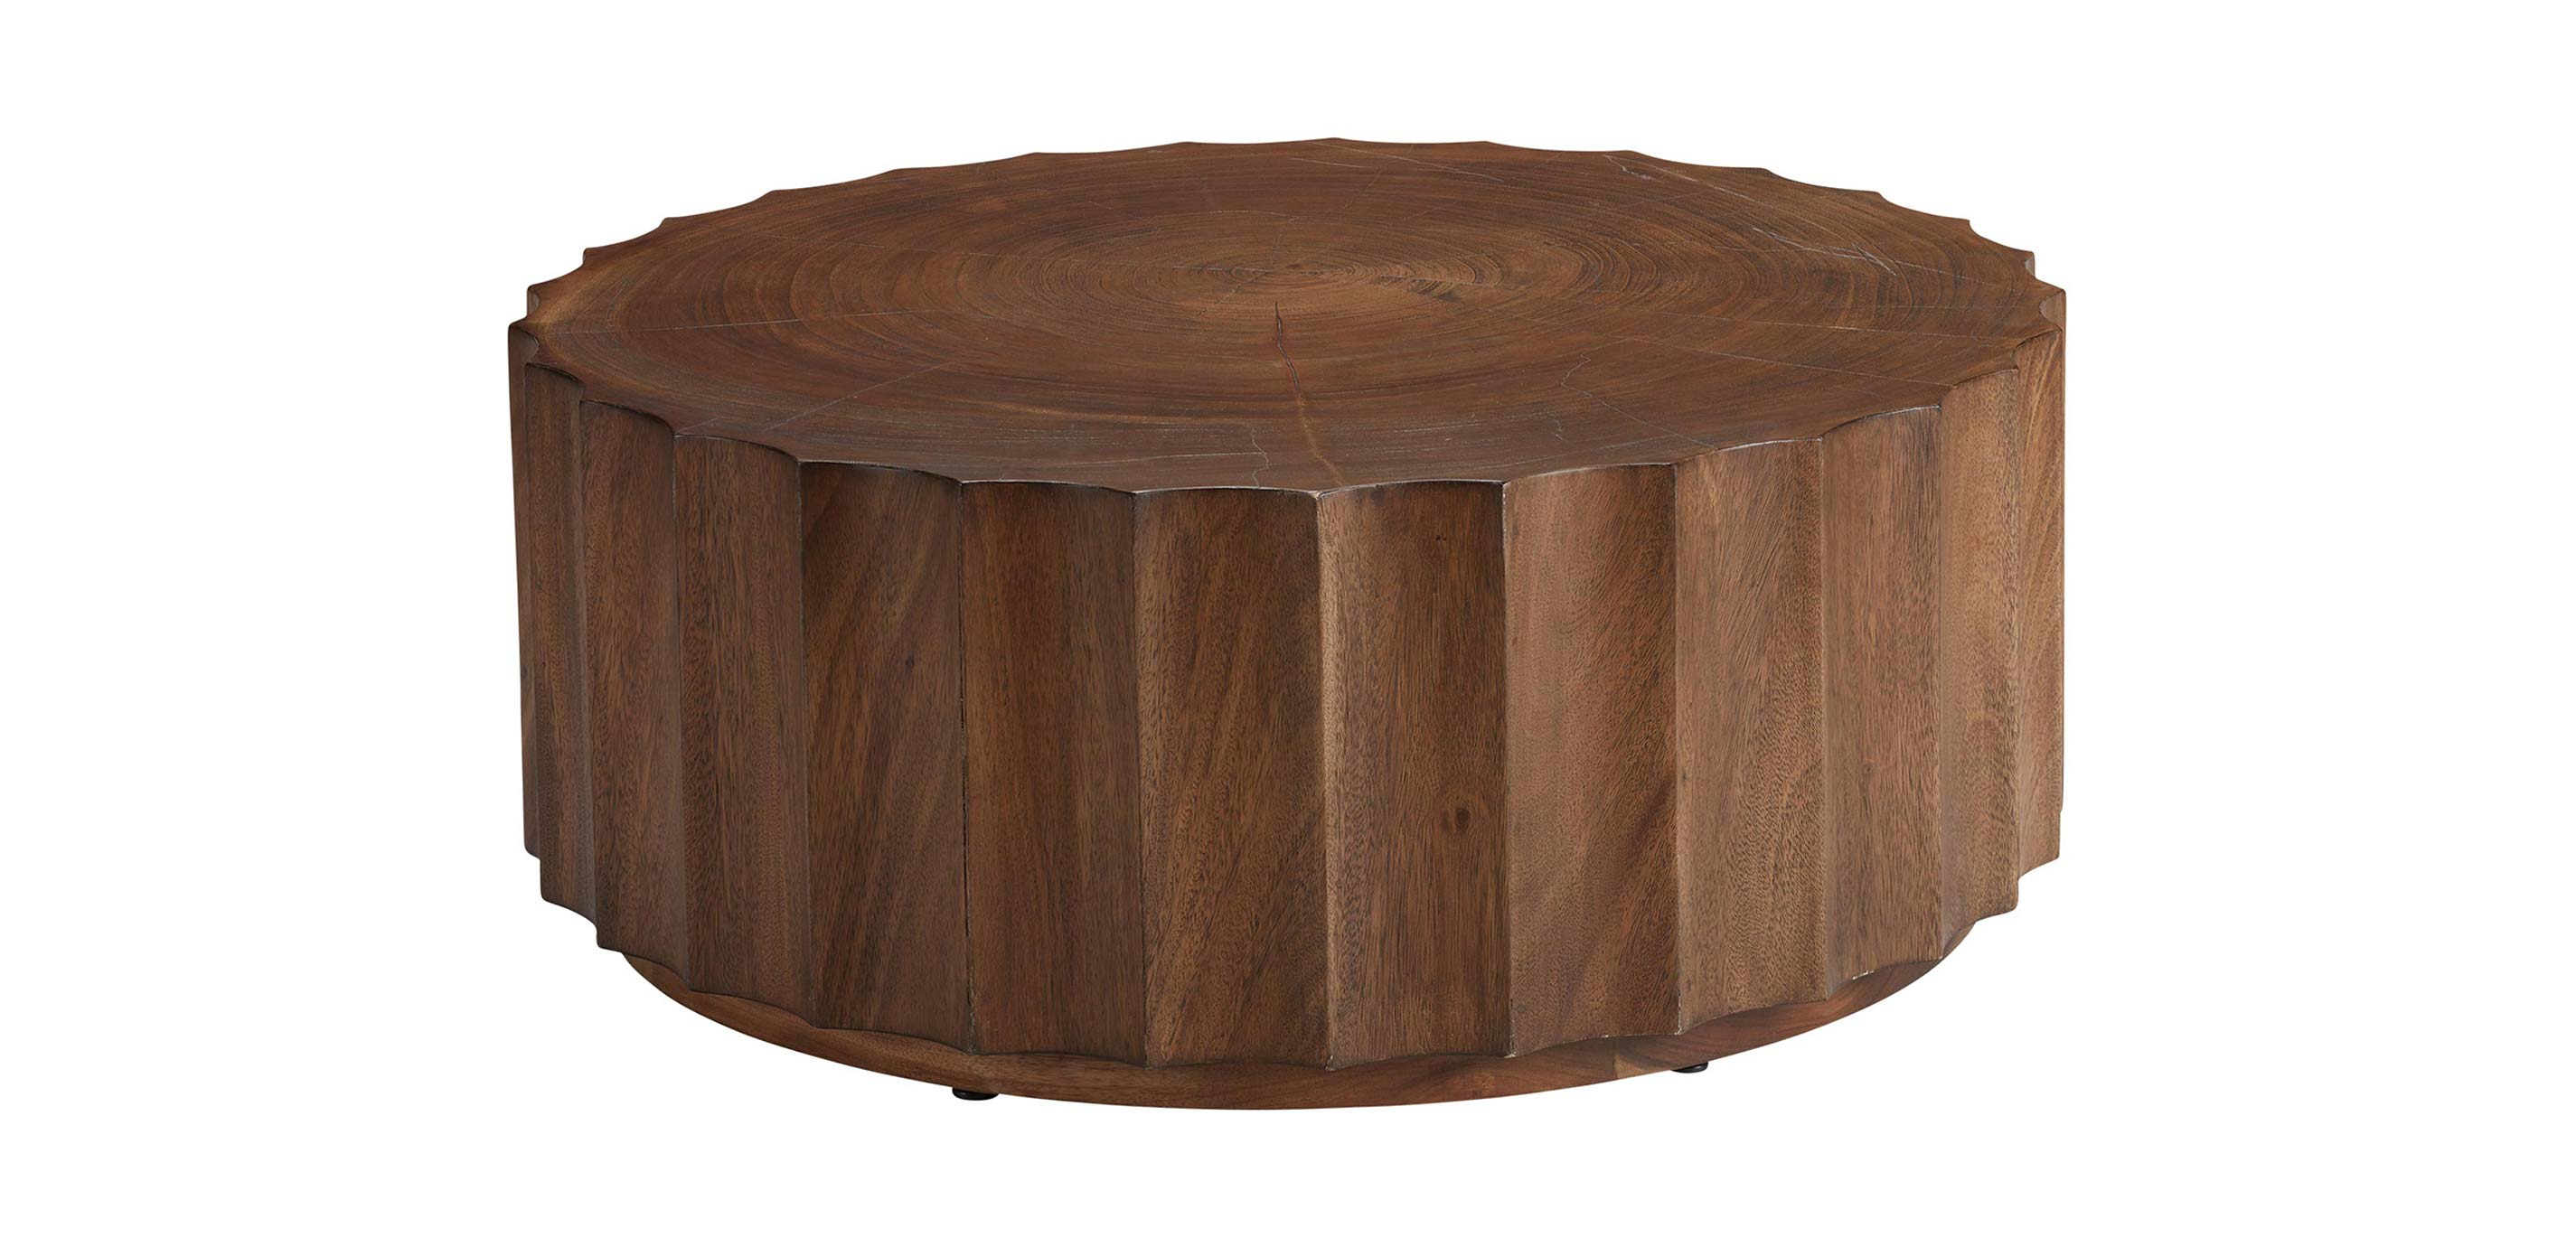 Girard Reclaimed Wood Coffee Table Wooden Top Ethan Allen